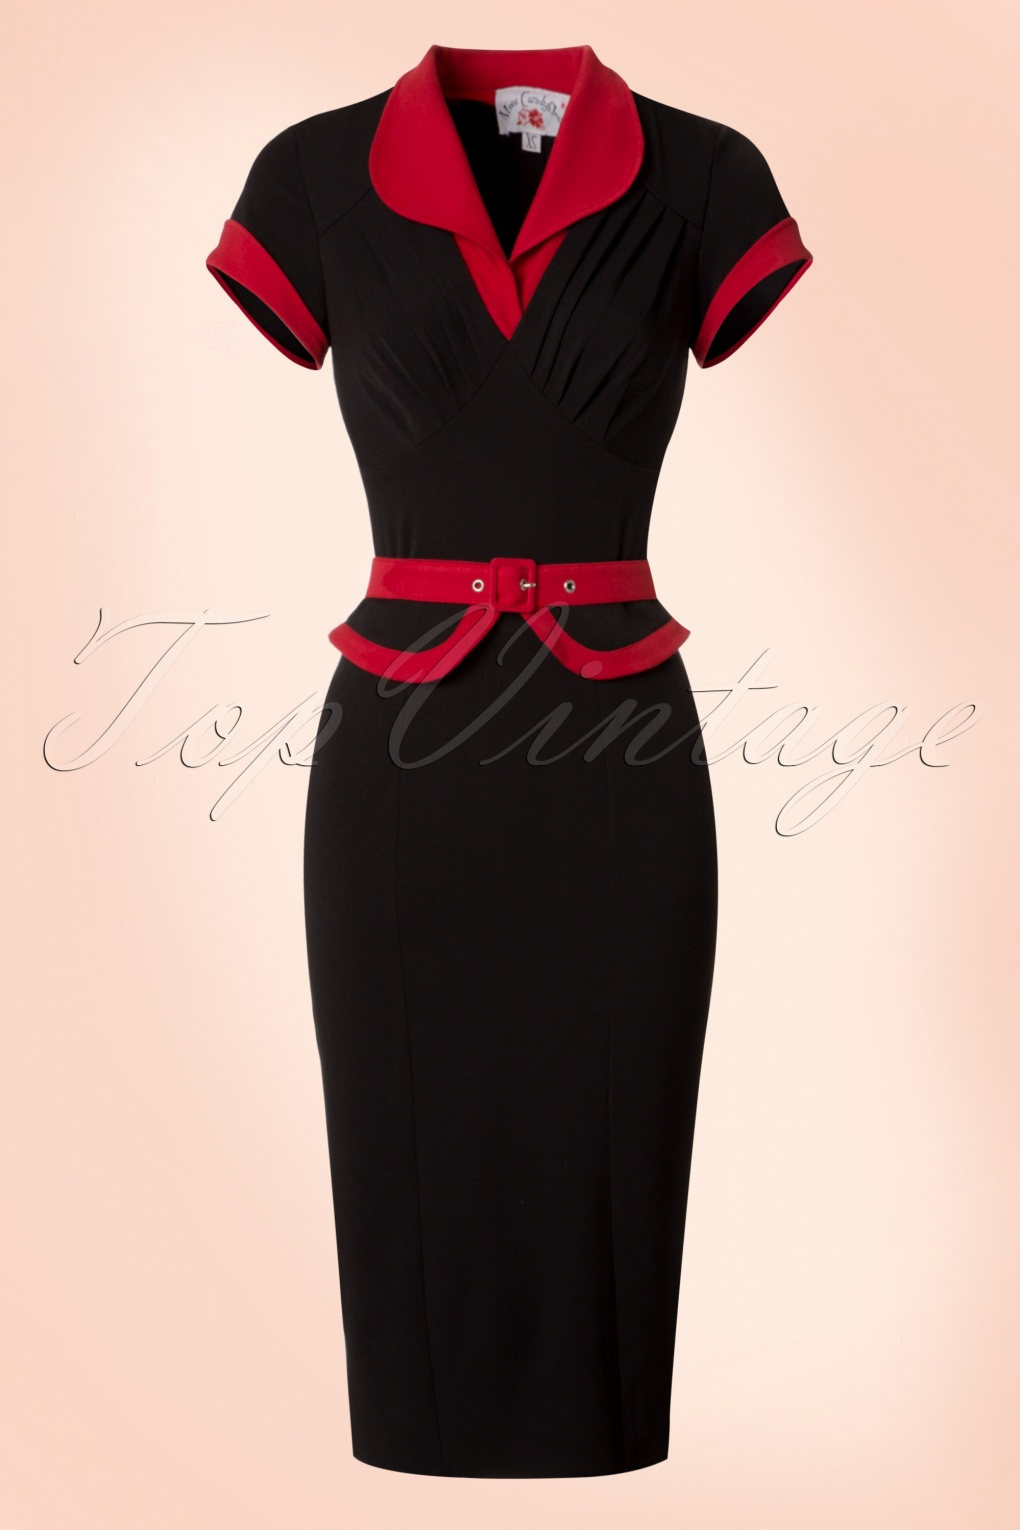 Wiggle Dresses for Sale -1940s, 1950s, 1960s Styles